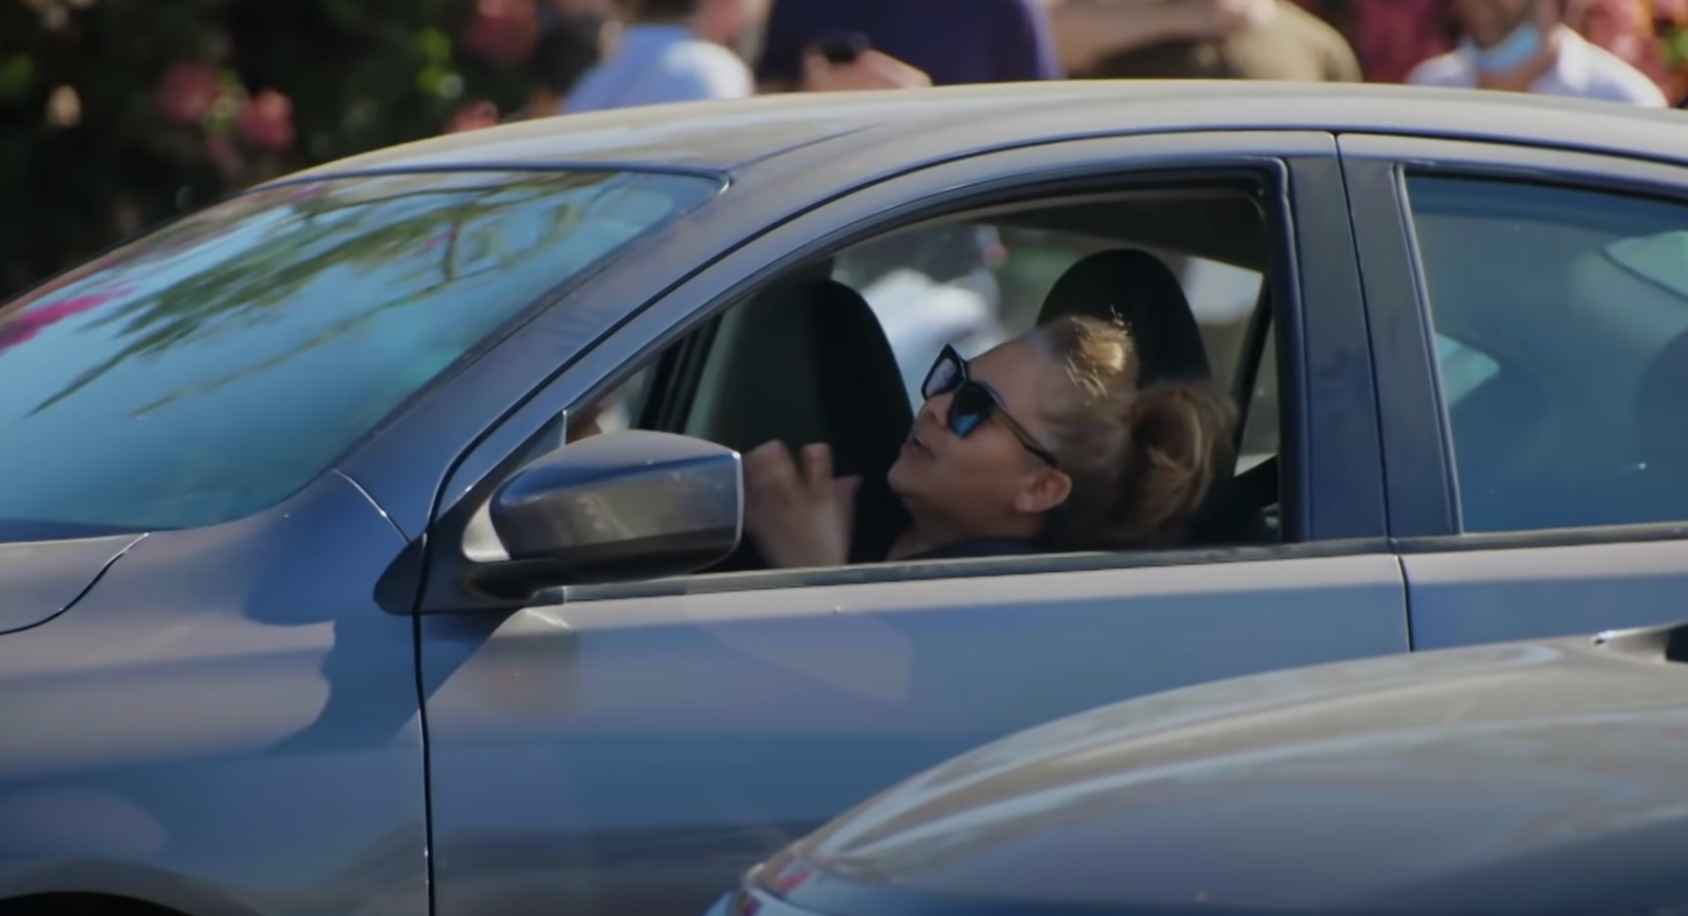 Woman wearing sunglasses and sitting in the driver's seat looking frustrated